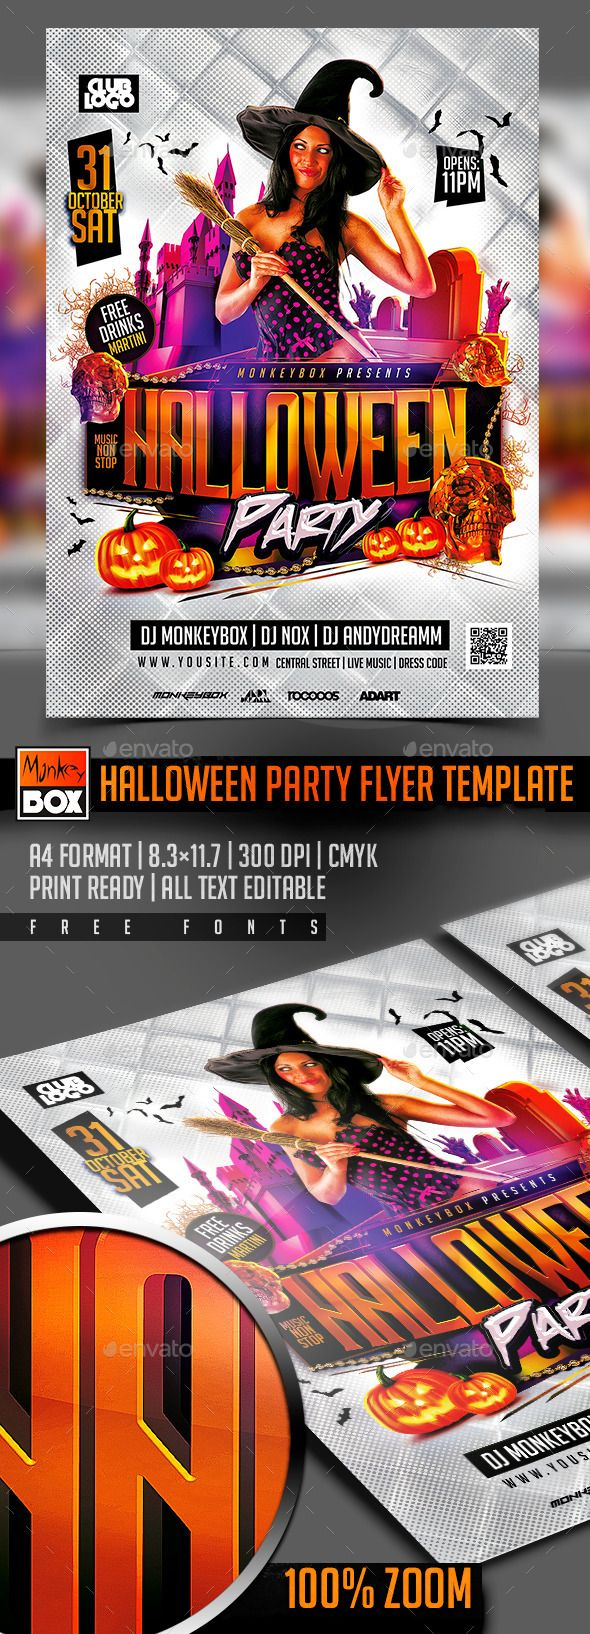 Halloween Party Flyer Template Psd Design Download Http